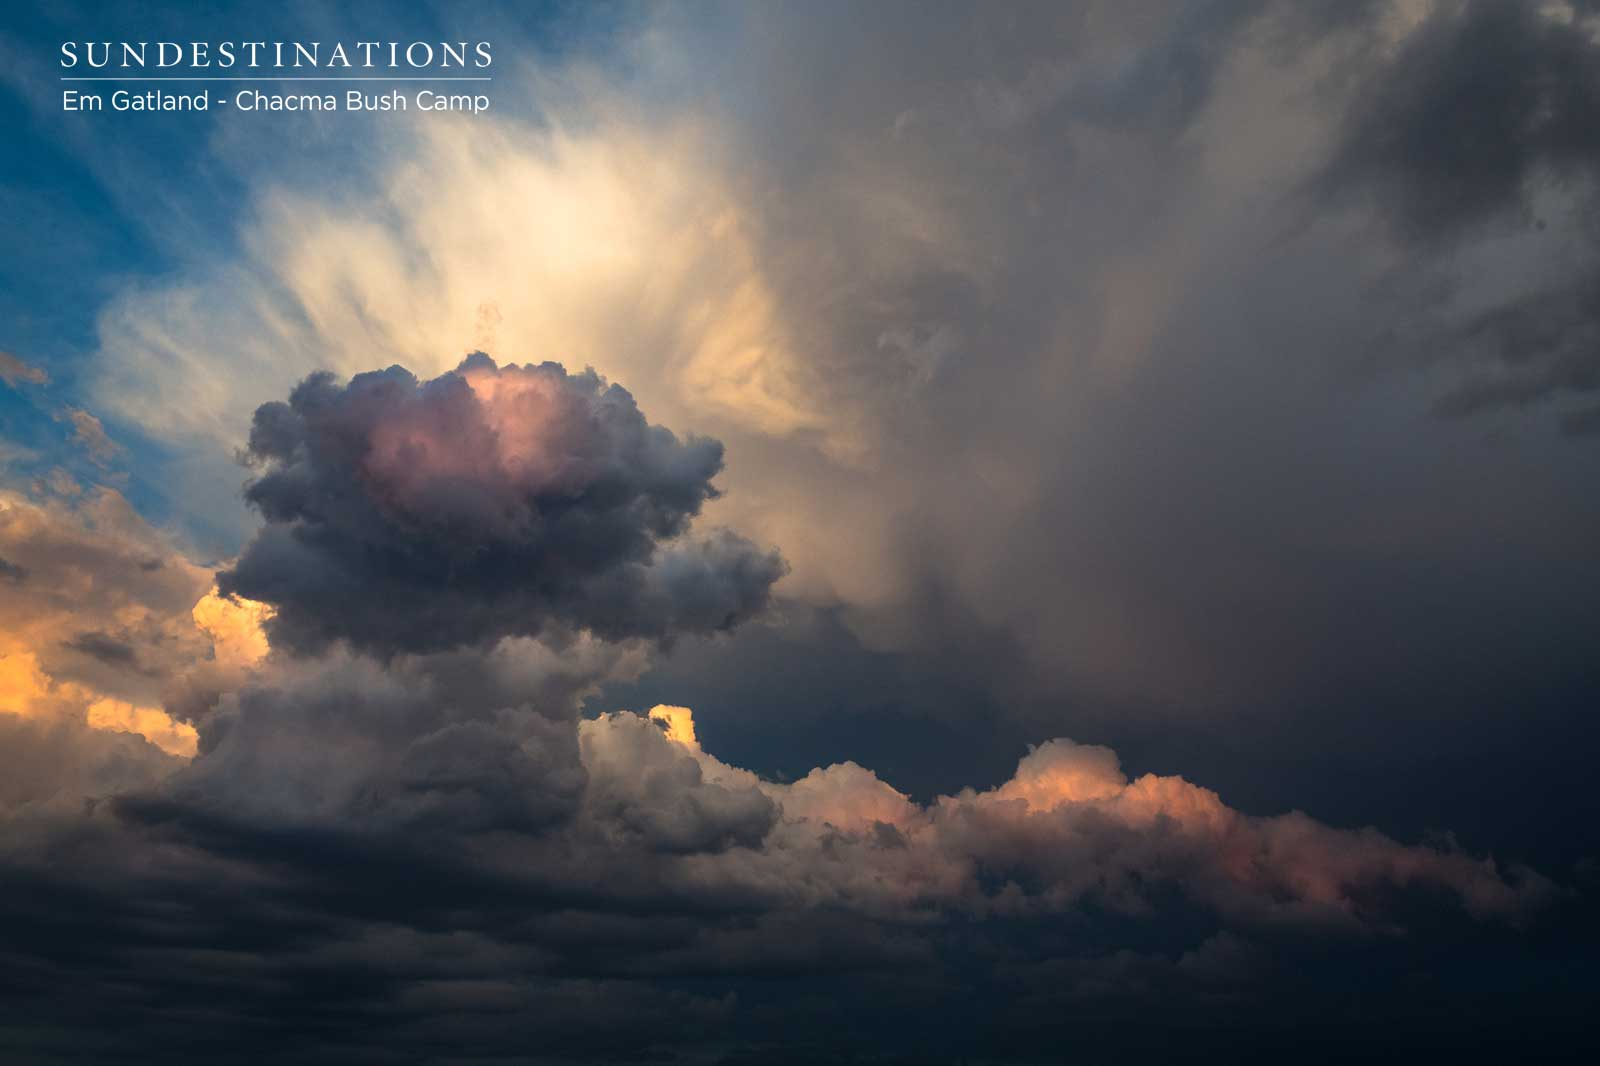 Thunderclouds at Chacma